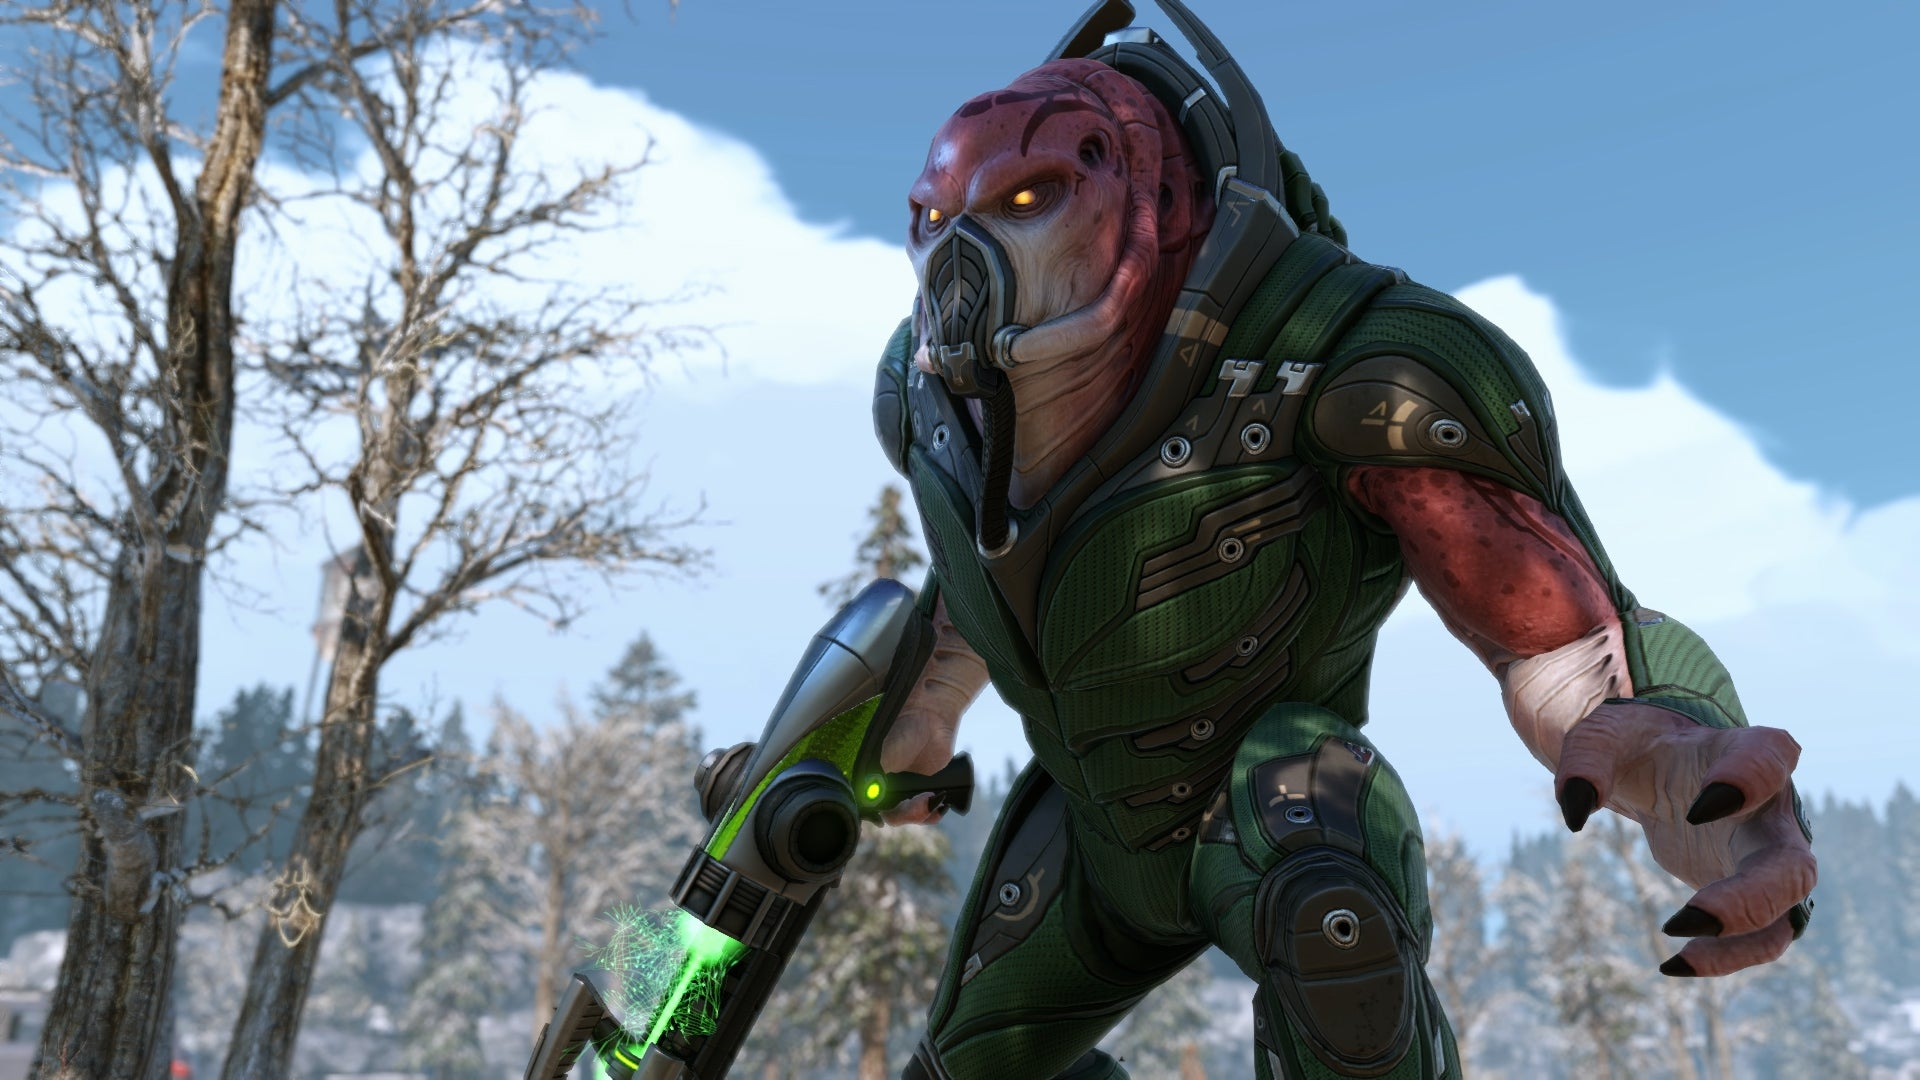 XCOM 2: The Kotaku Review